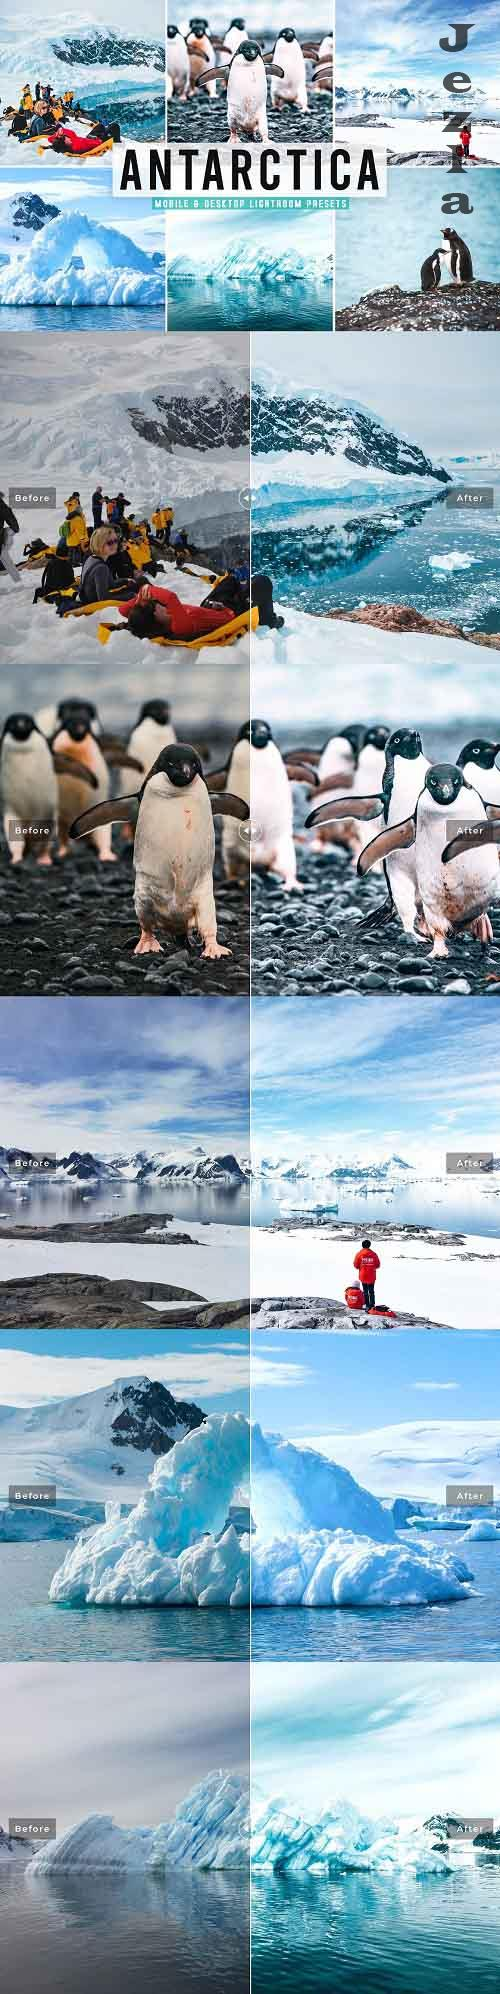 CreativeMarket - Antarctica Pro Lightroom Presets - 5495663 - Mobile & Desktop